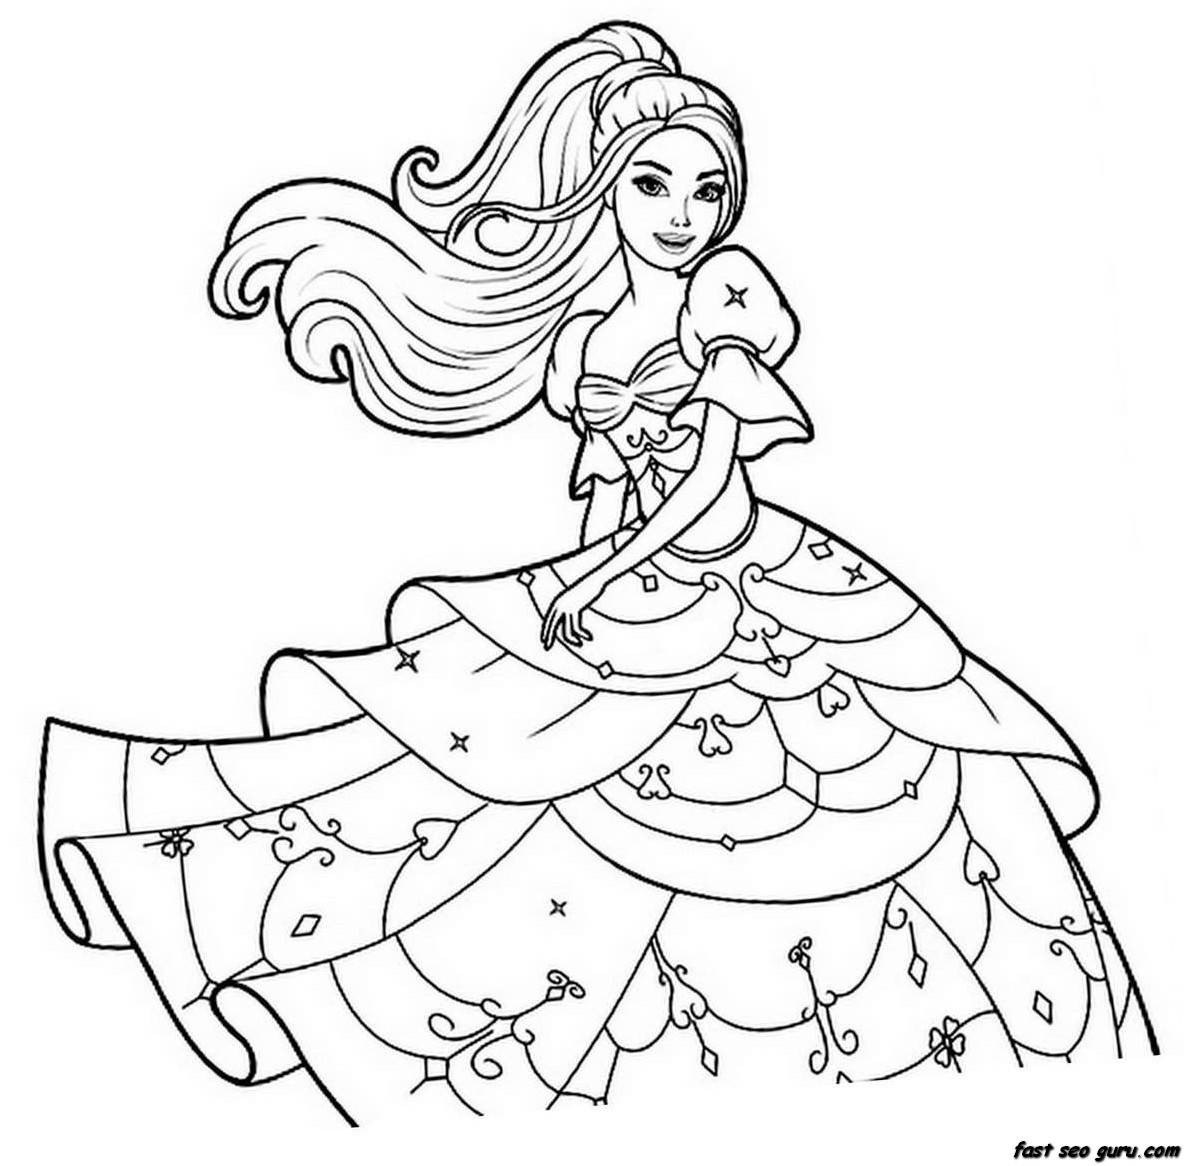 Free Printable Coloring Sheets For Girls  coloring pages for girls